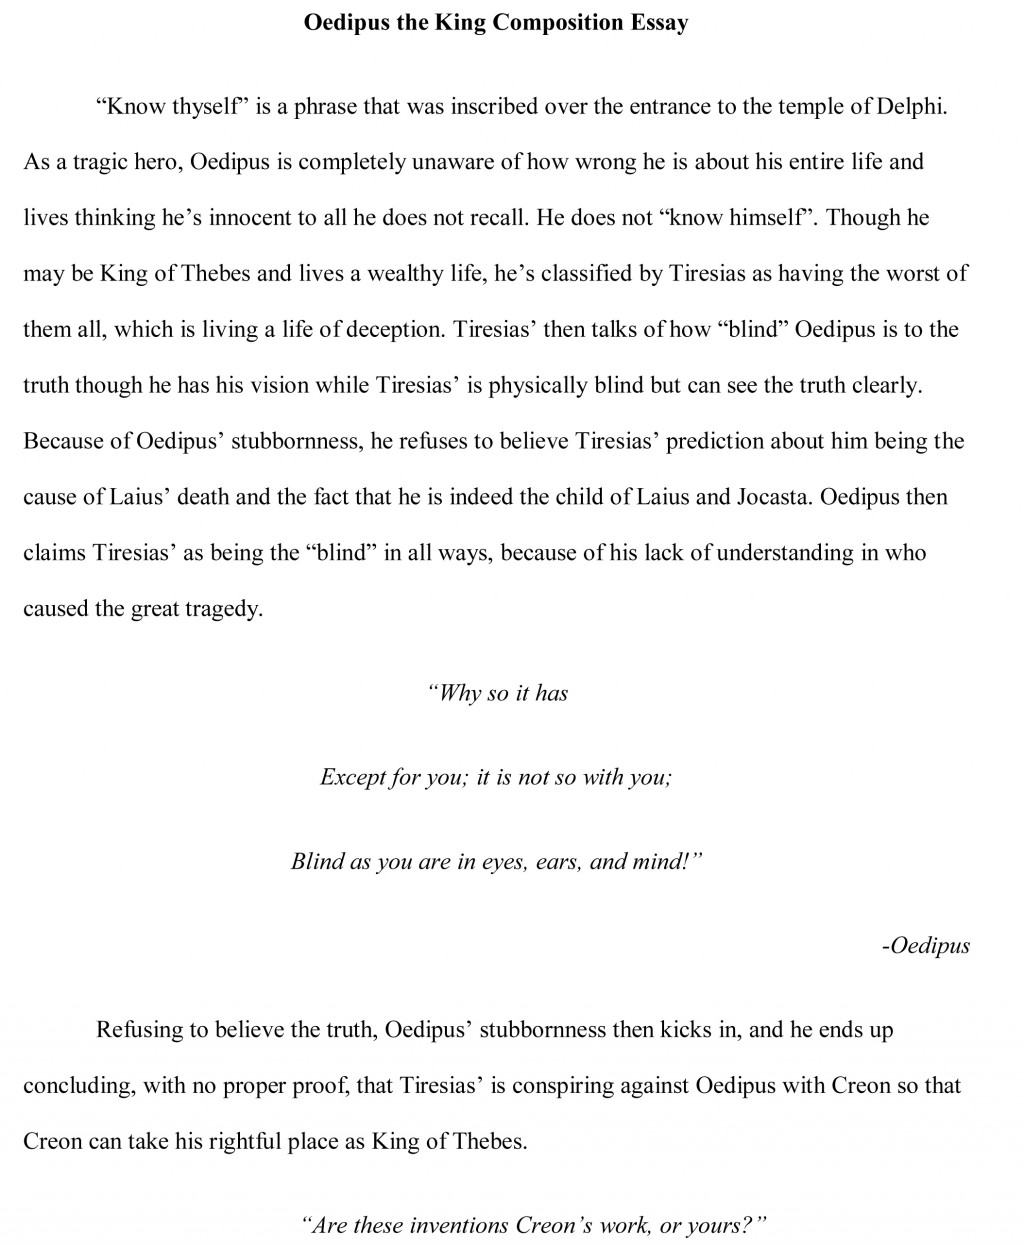 004 Oedipus Essay Free Sample Example Great Fearsome Topics Good For High Schoolers School Students Interesting Middle Large